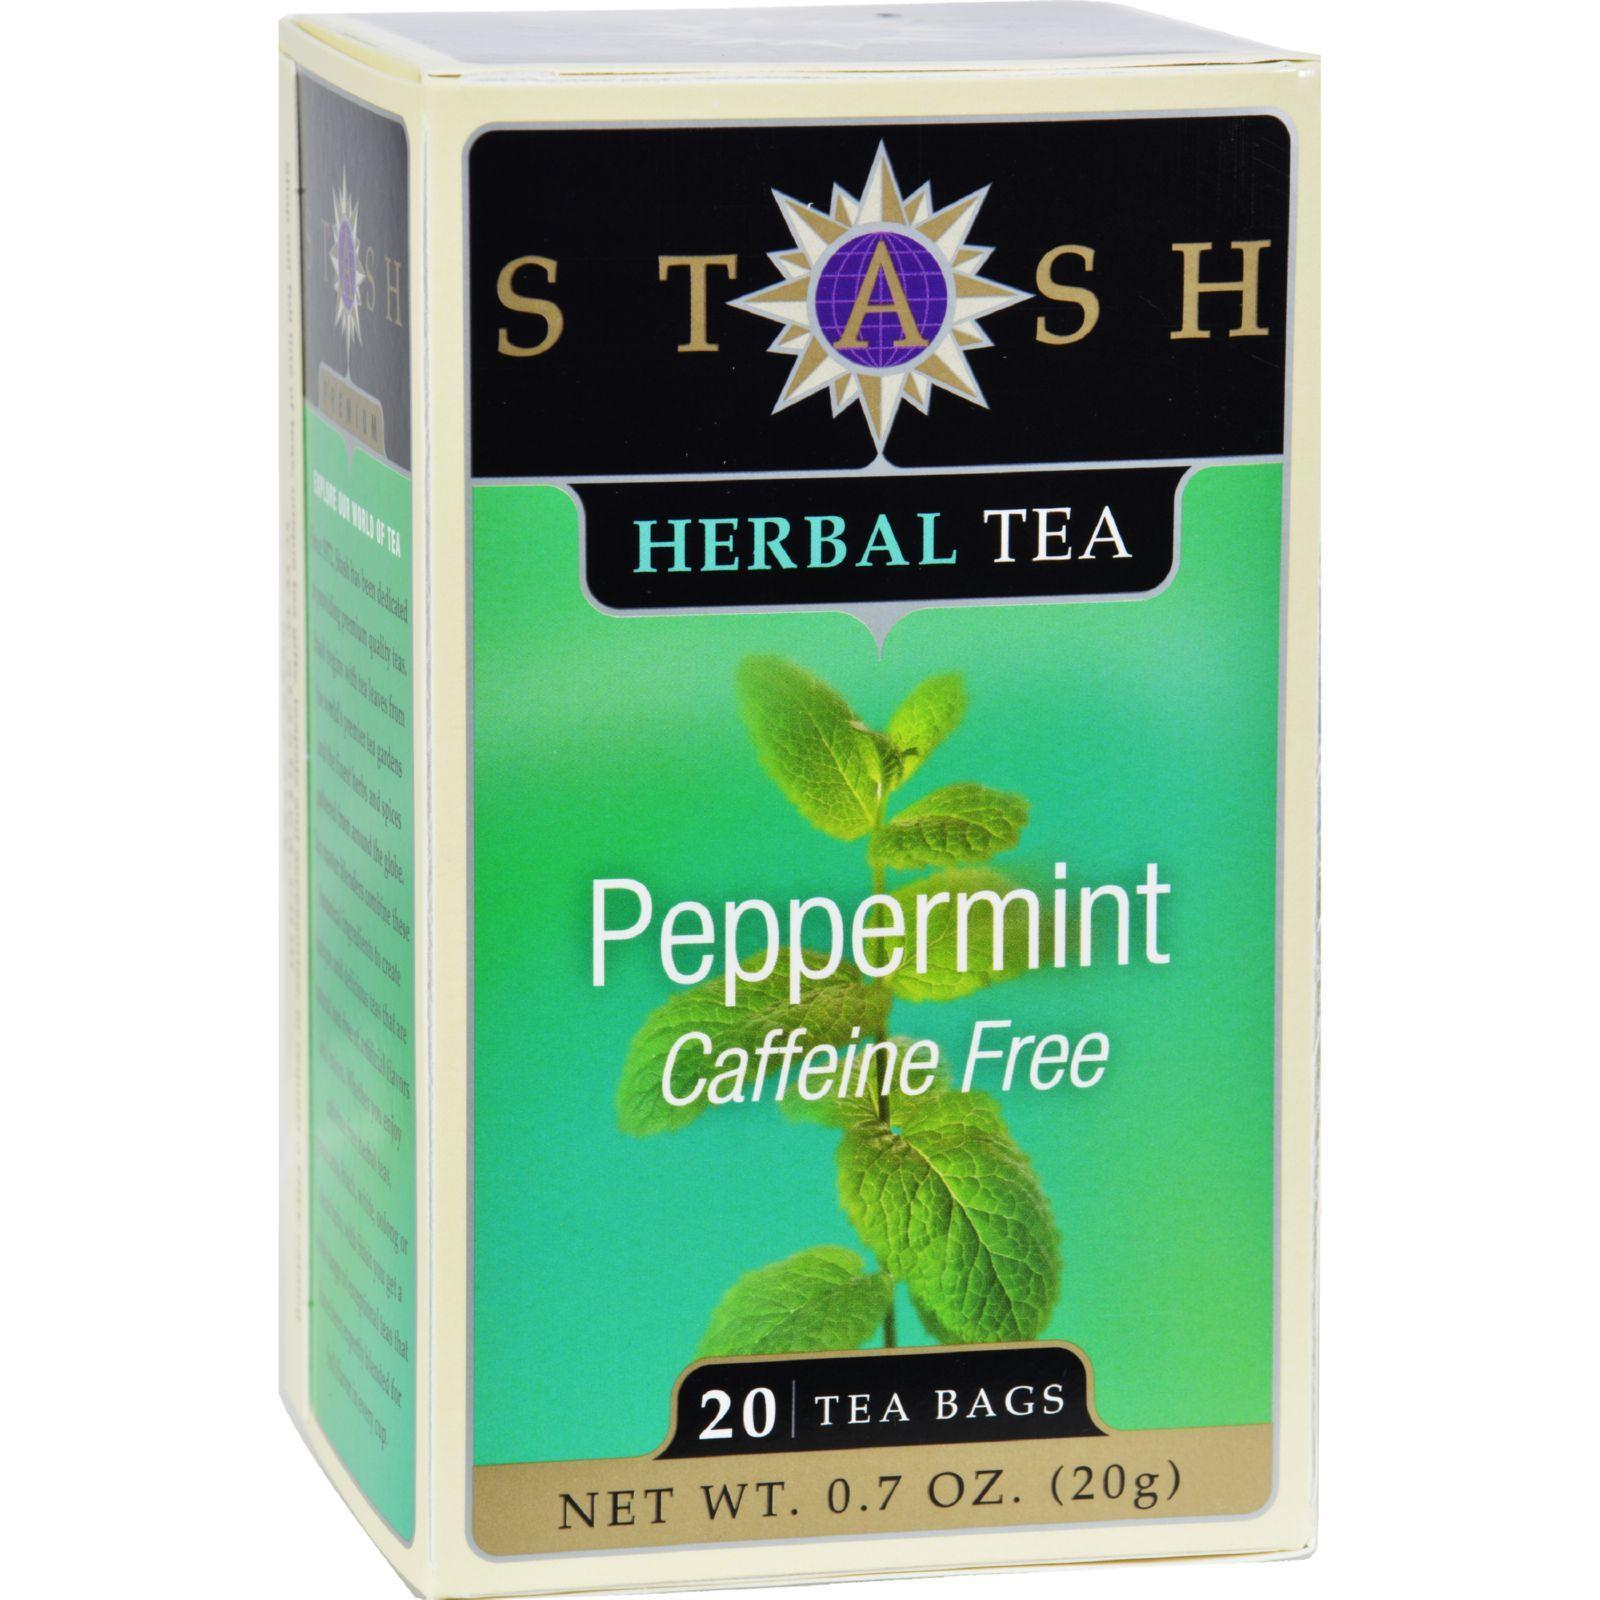 Stash Tea Teas, Coffee & Energy drinks Stash Tea - Herbal - Peppermint - 20 Bags - Case Of 6